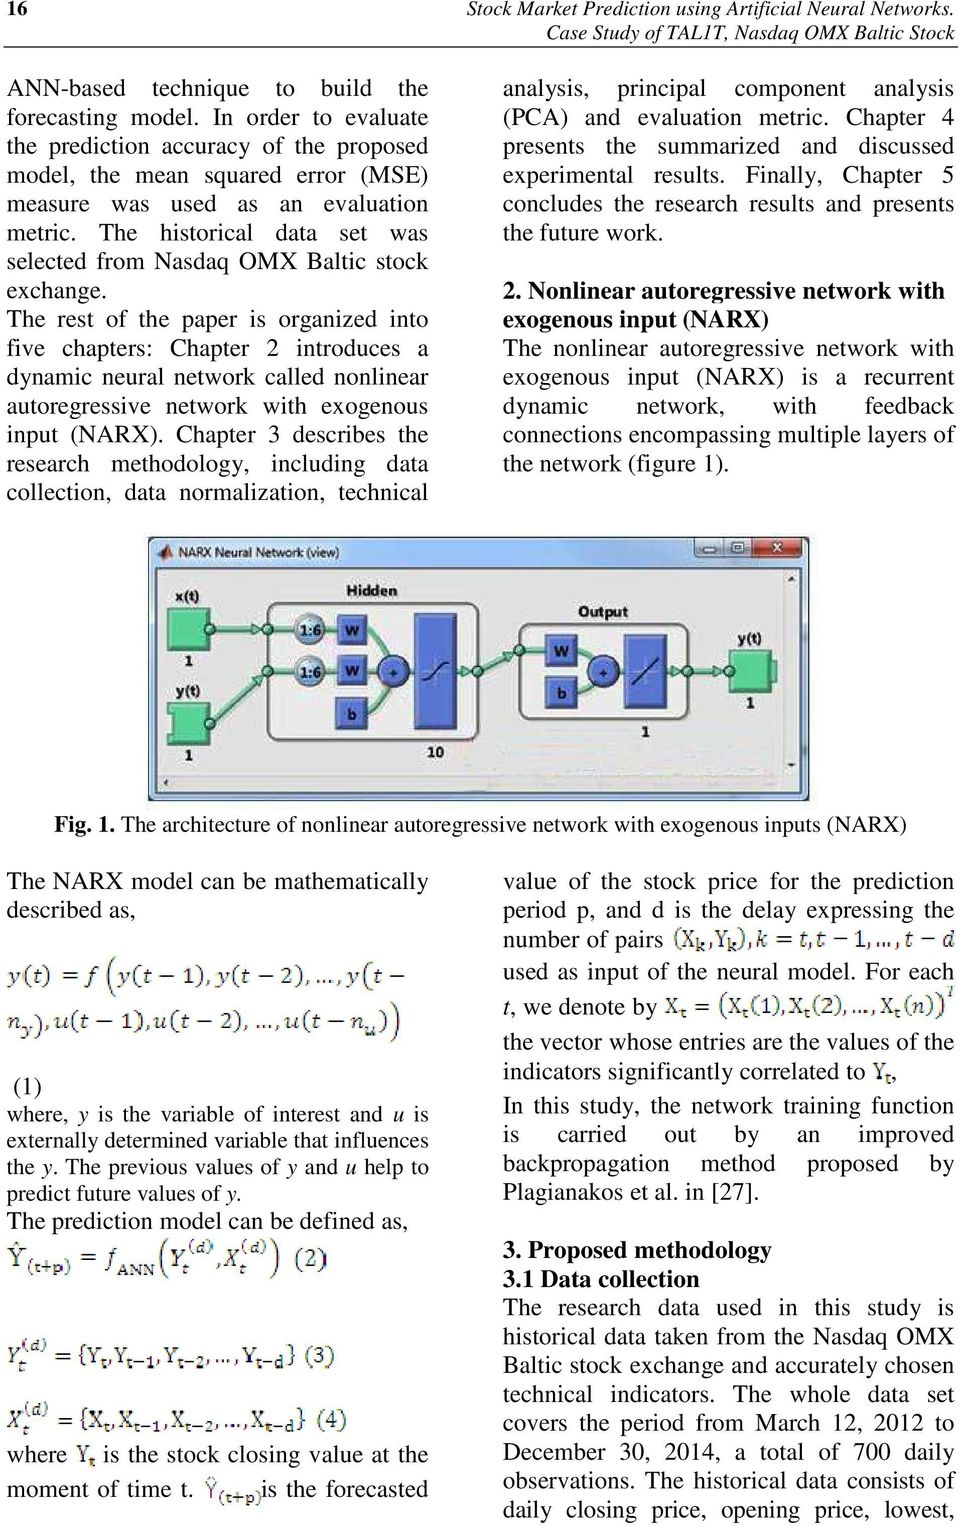 Stock Market Prediction using Artificial Neural Networks  Case Study